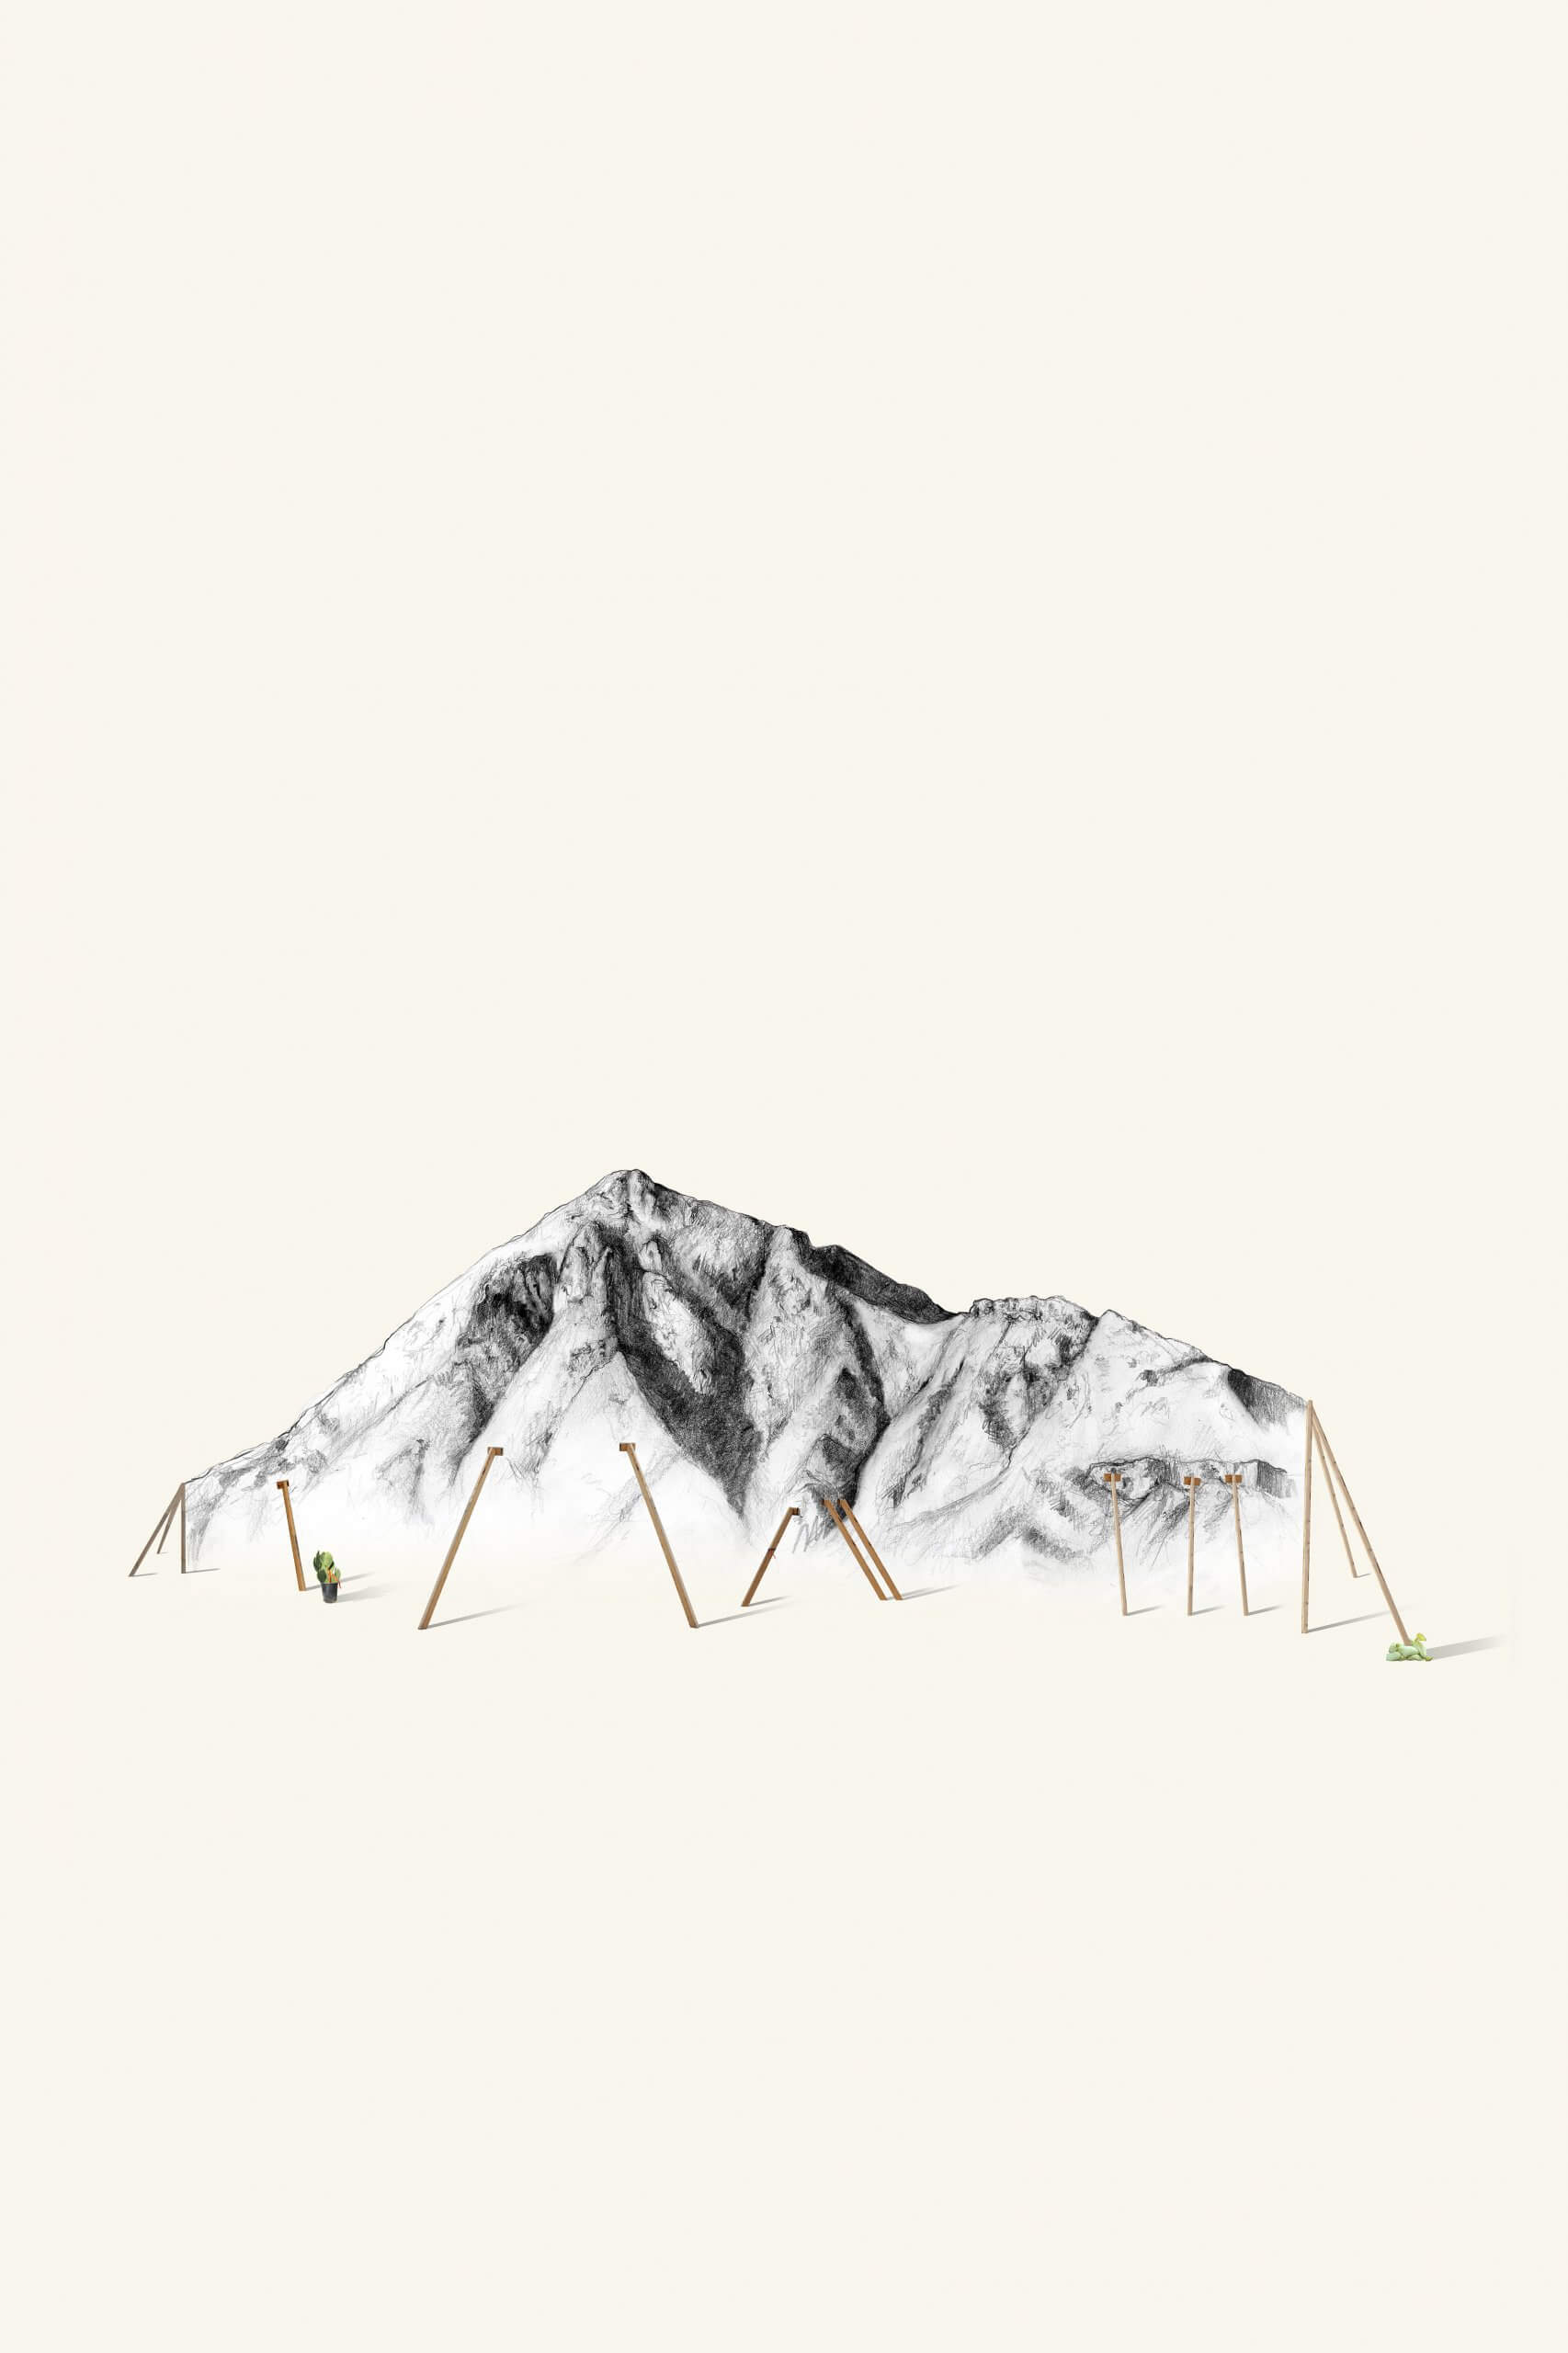 A very realistic pencil drawing of a mountain with less detailed images of wooden poles placed at different angles in the foreground. There is a very small human figure off to the left.